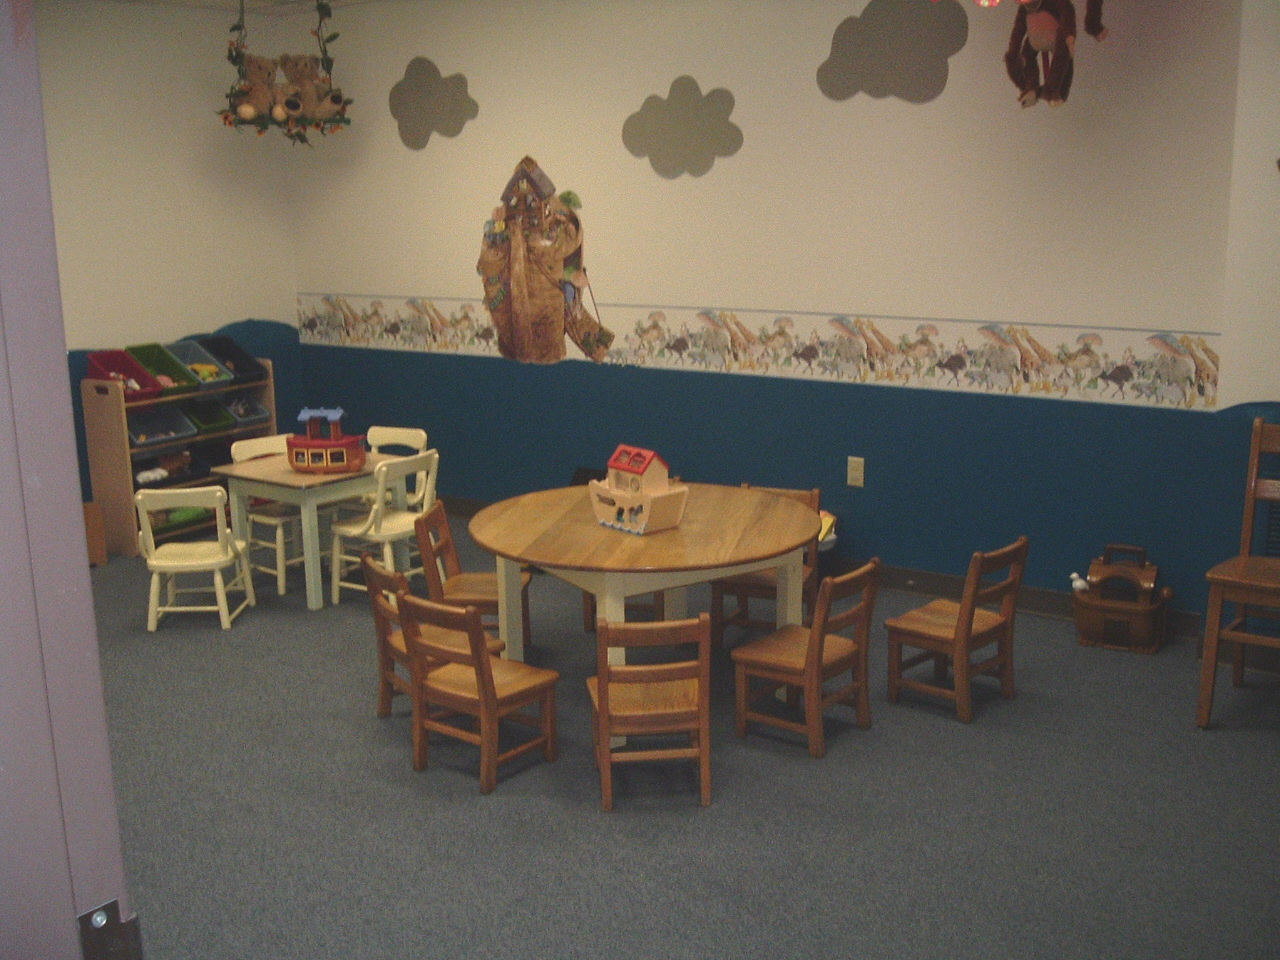 - Do you have childcare?Yes! Deer Park has Sunday School for elementary age children and childcare for babies through preschool. All of our children's ministry workers are experienced, trusted, and eager to care for your child.